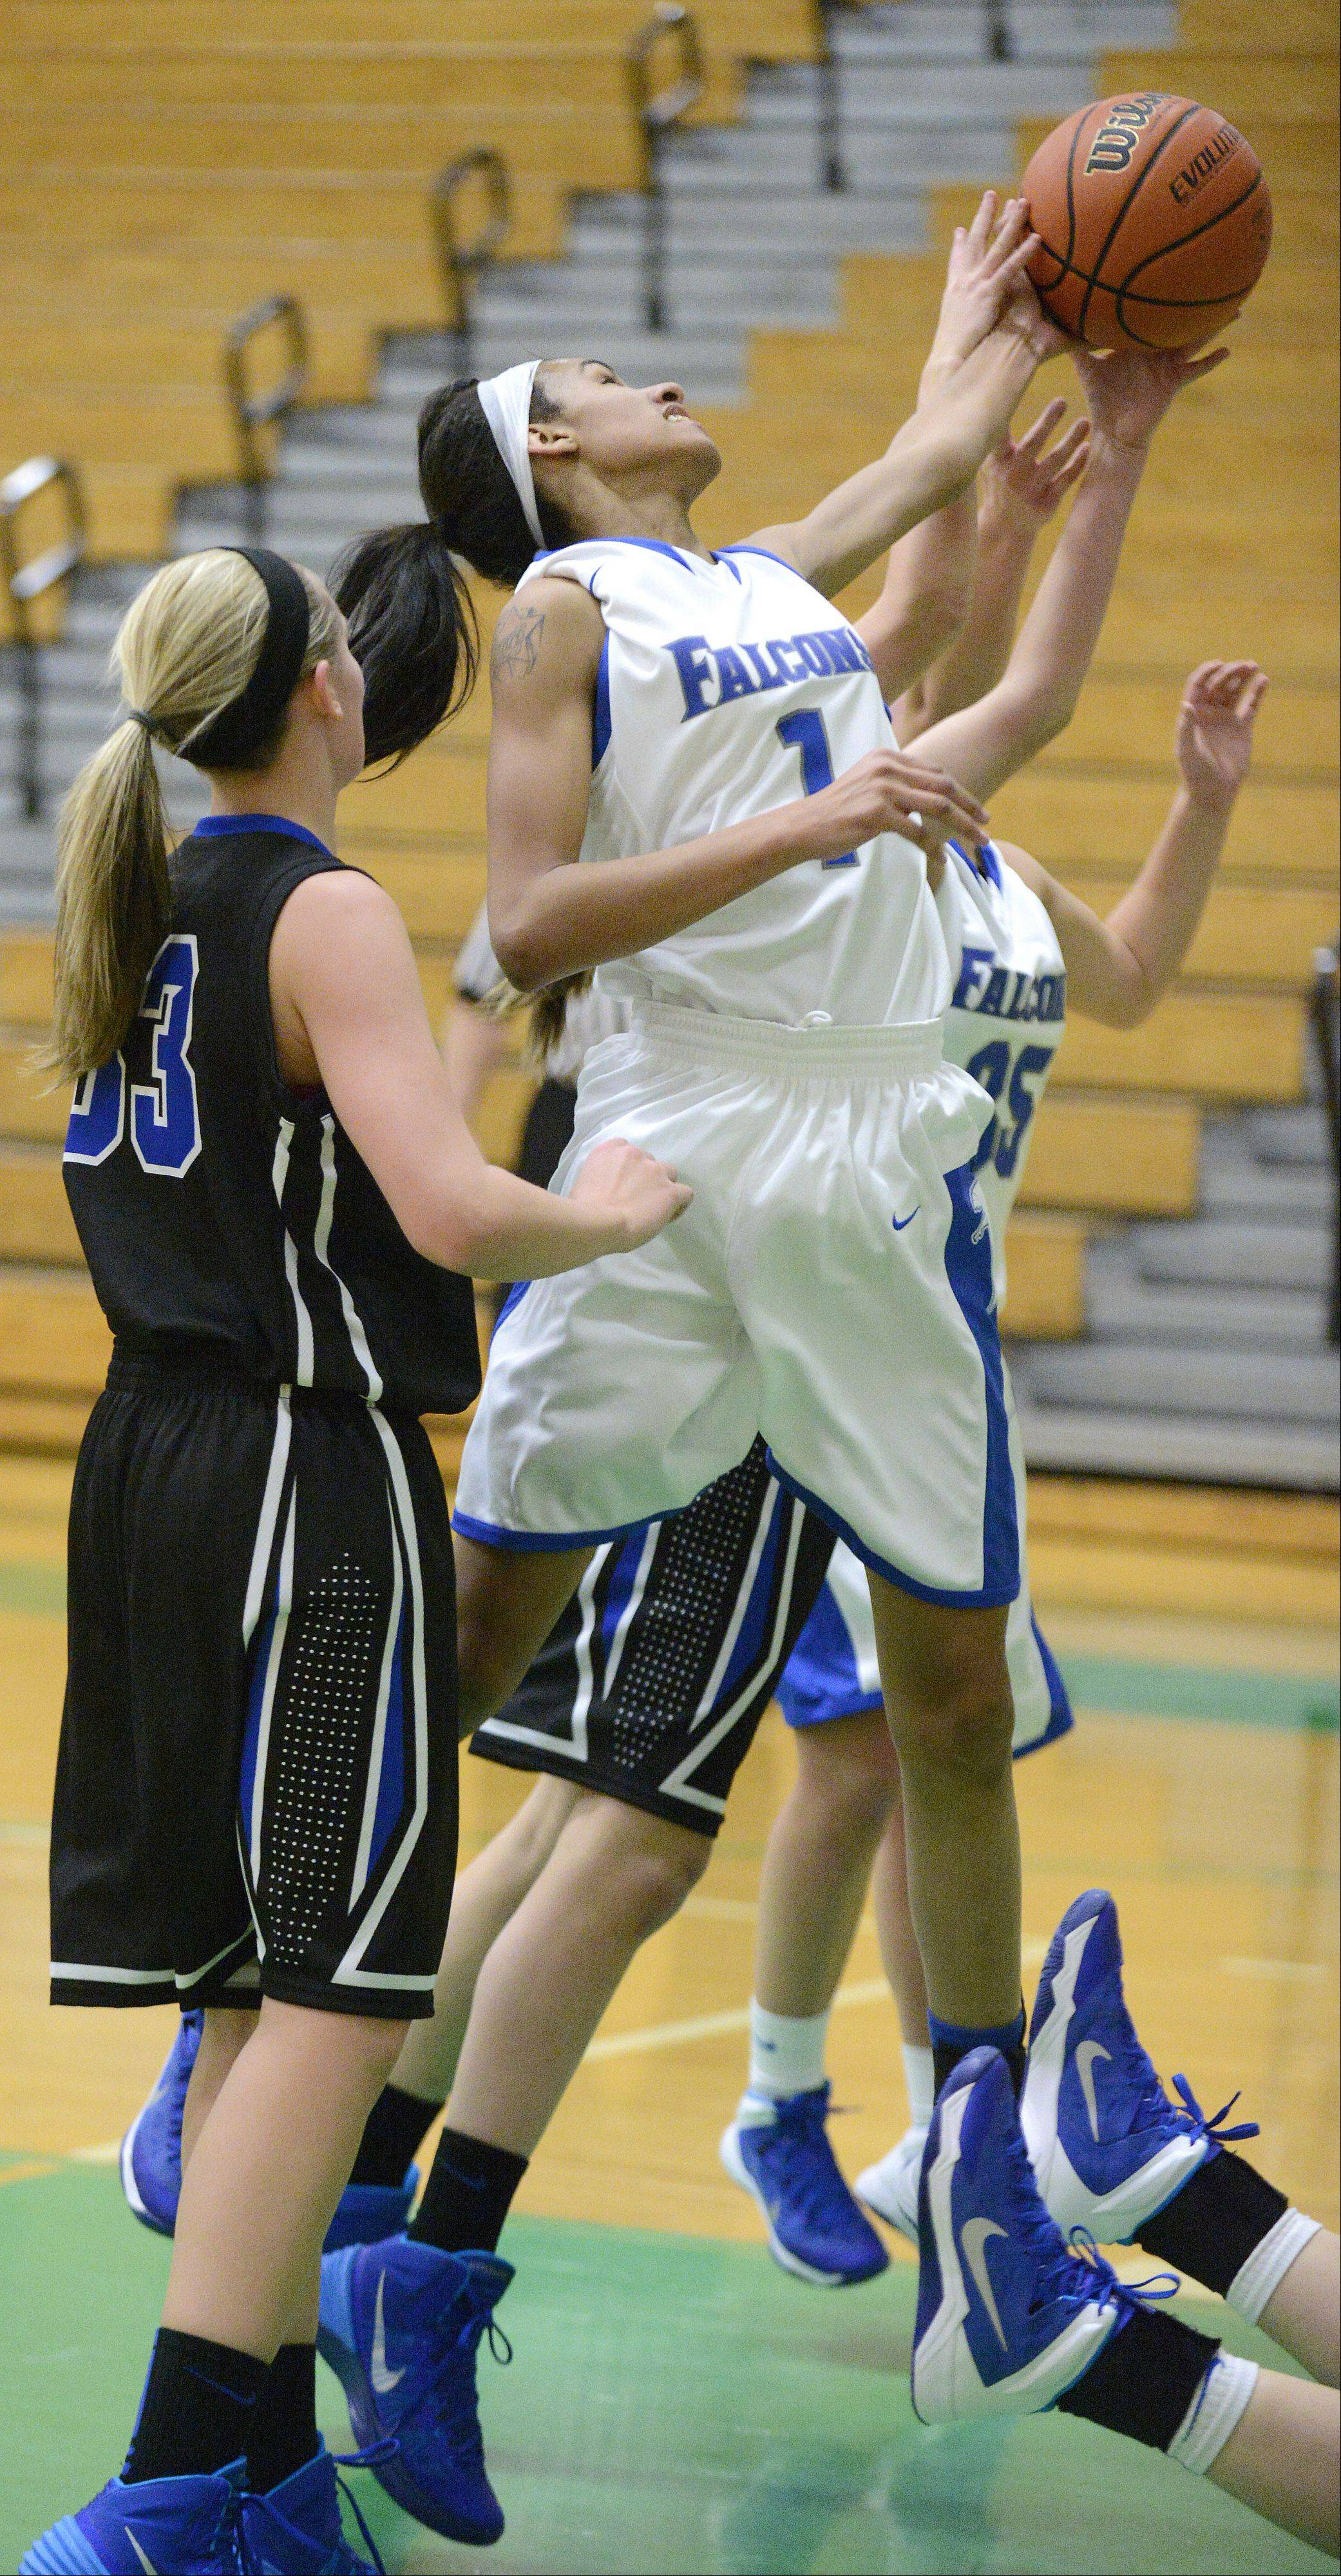 Wheaton North's Emari Jones fights for a rebound in the first quarter on Friday, November 22.